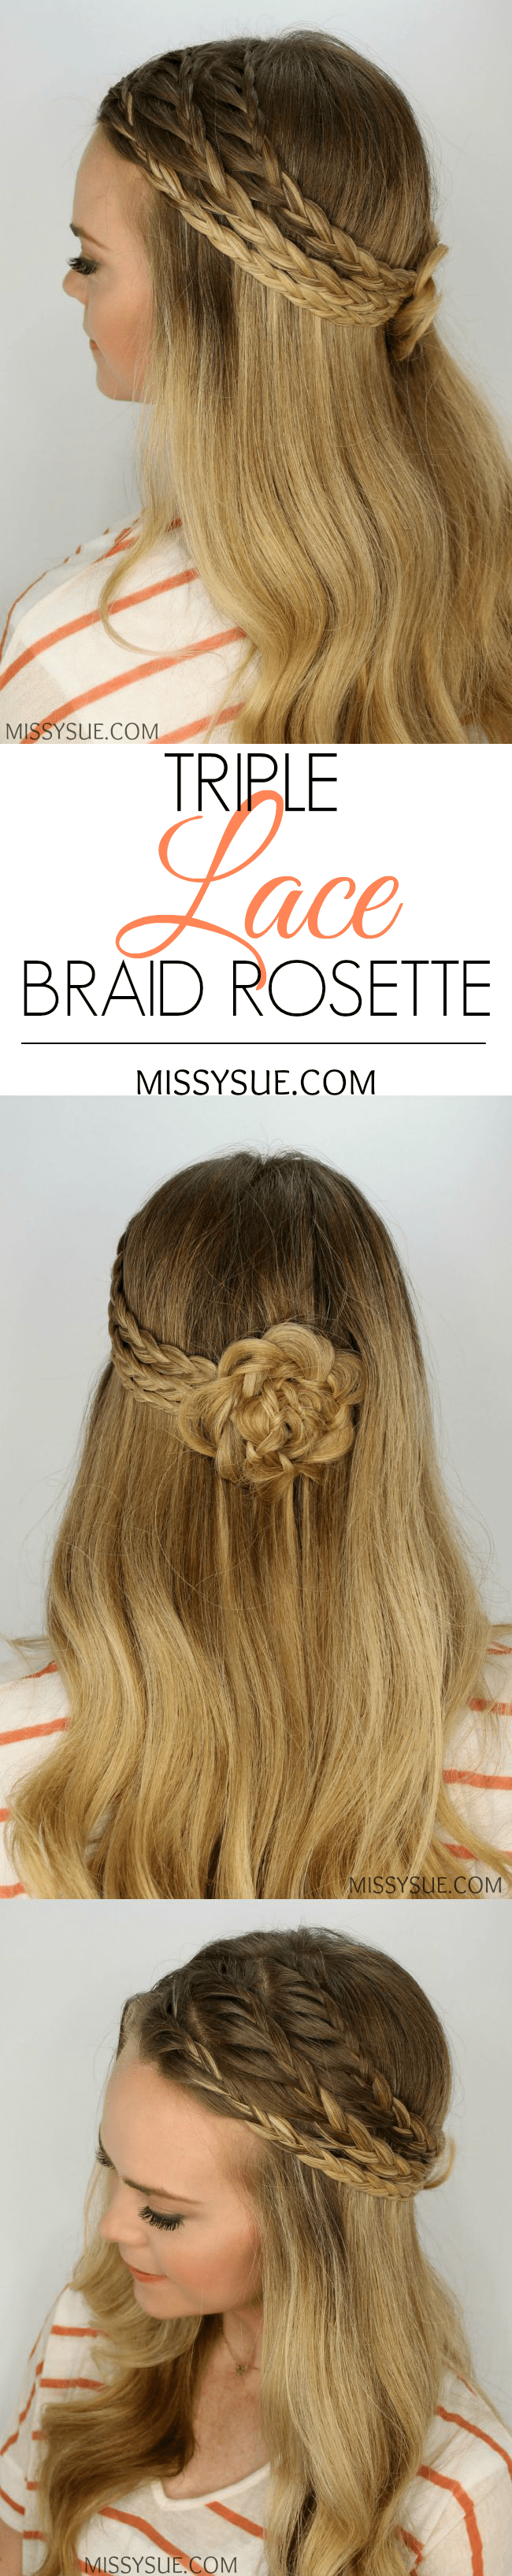 Triple Lace Braided Rosette